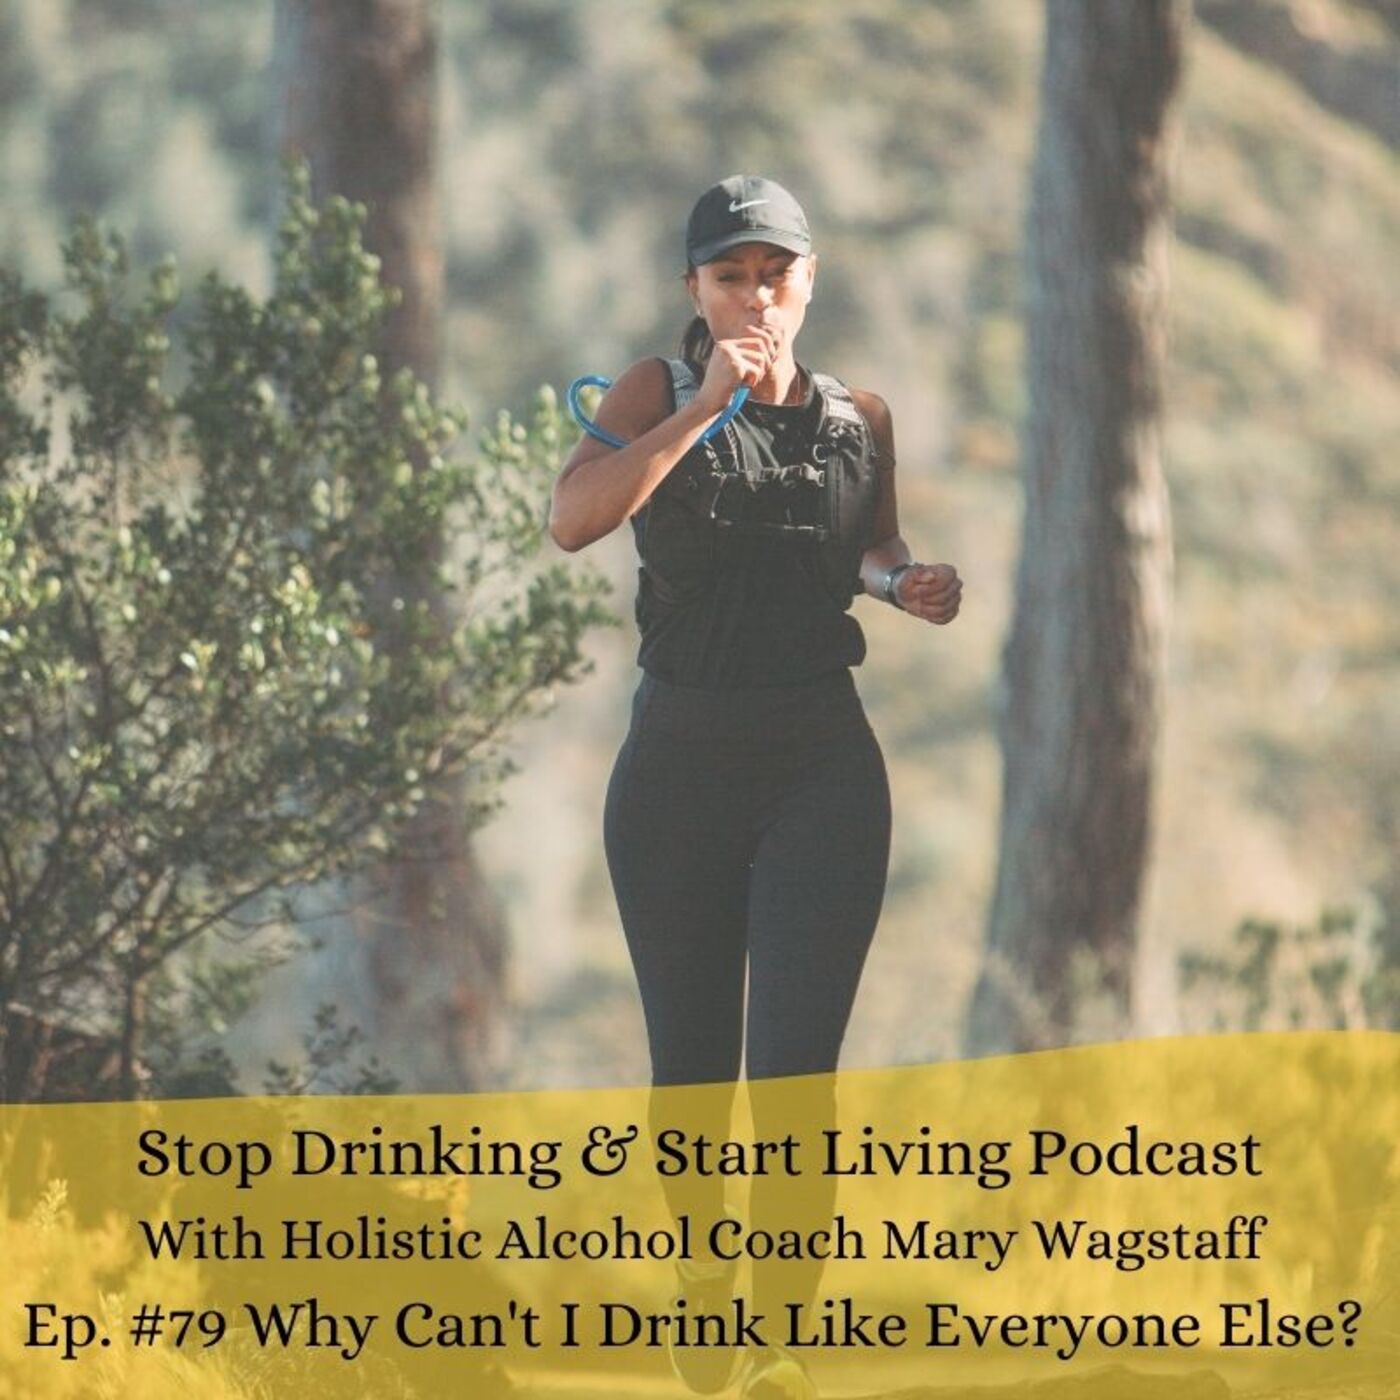 Ep. #79 Why Can't I Drink Like Everyone Else?